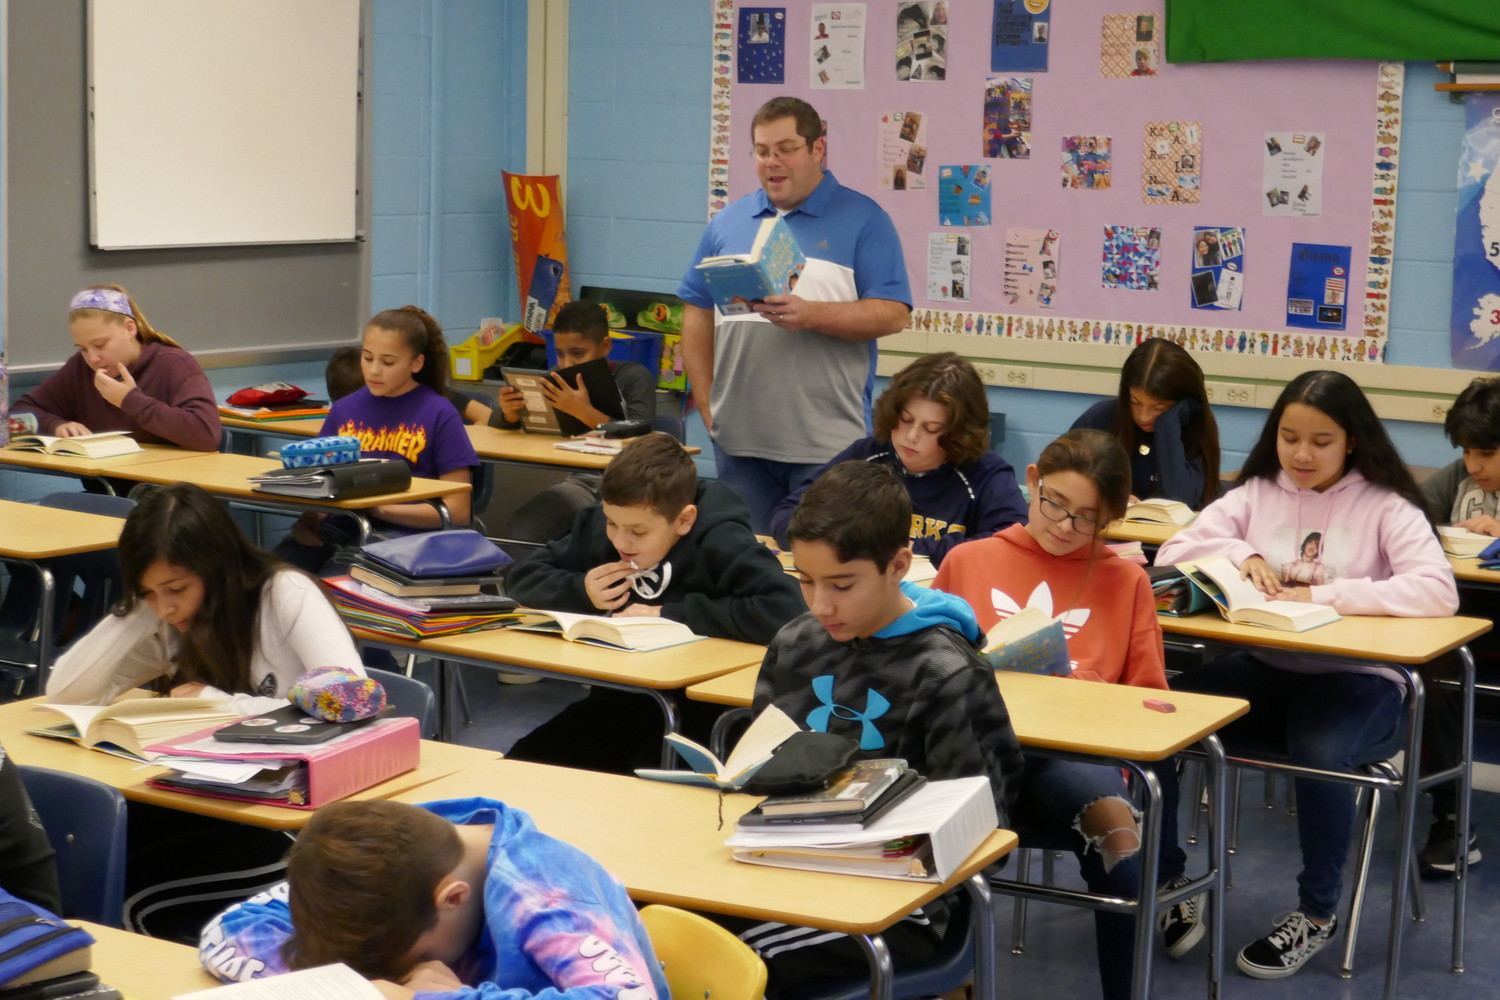 Students in Edward Risener's class at Oceanside Middle School are taking part in a schoolwide read-aloud program to help erase the stigma associated with mental health issues.